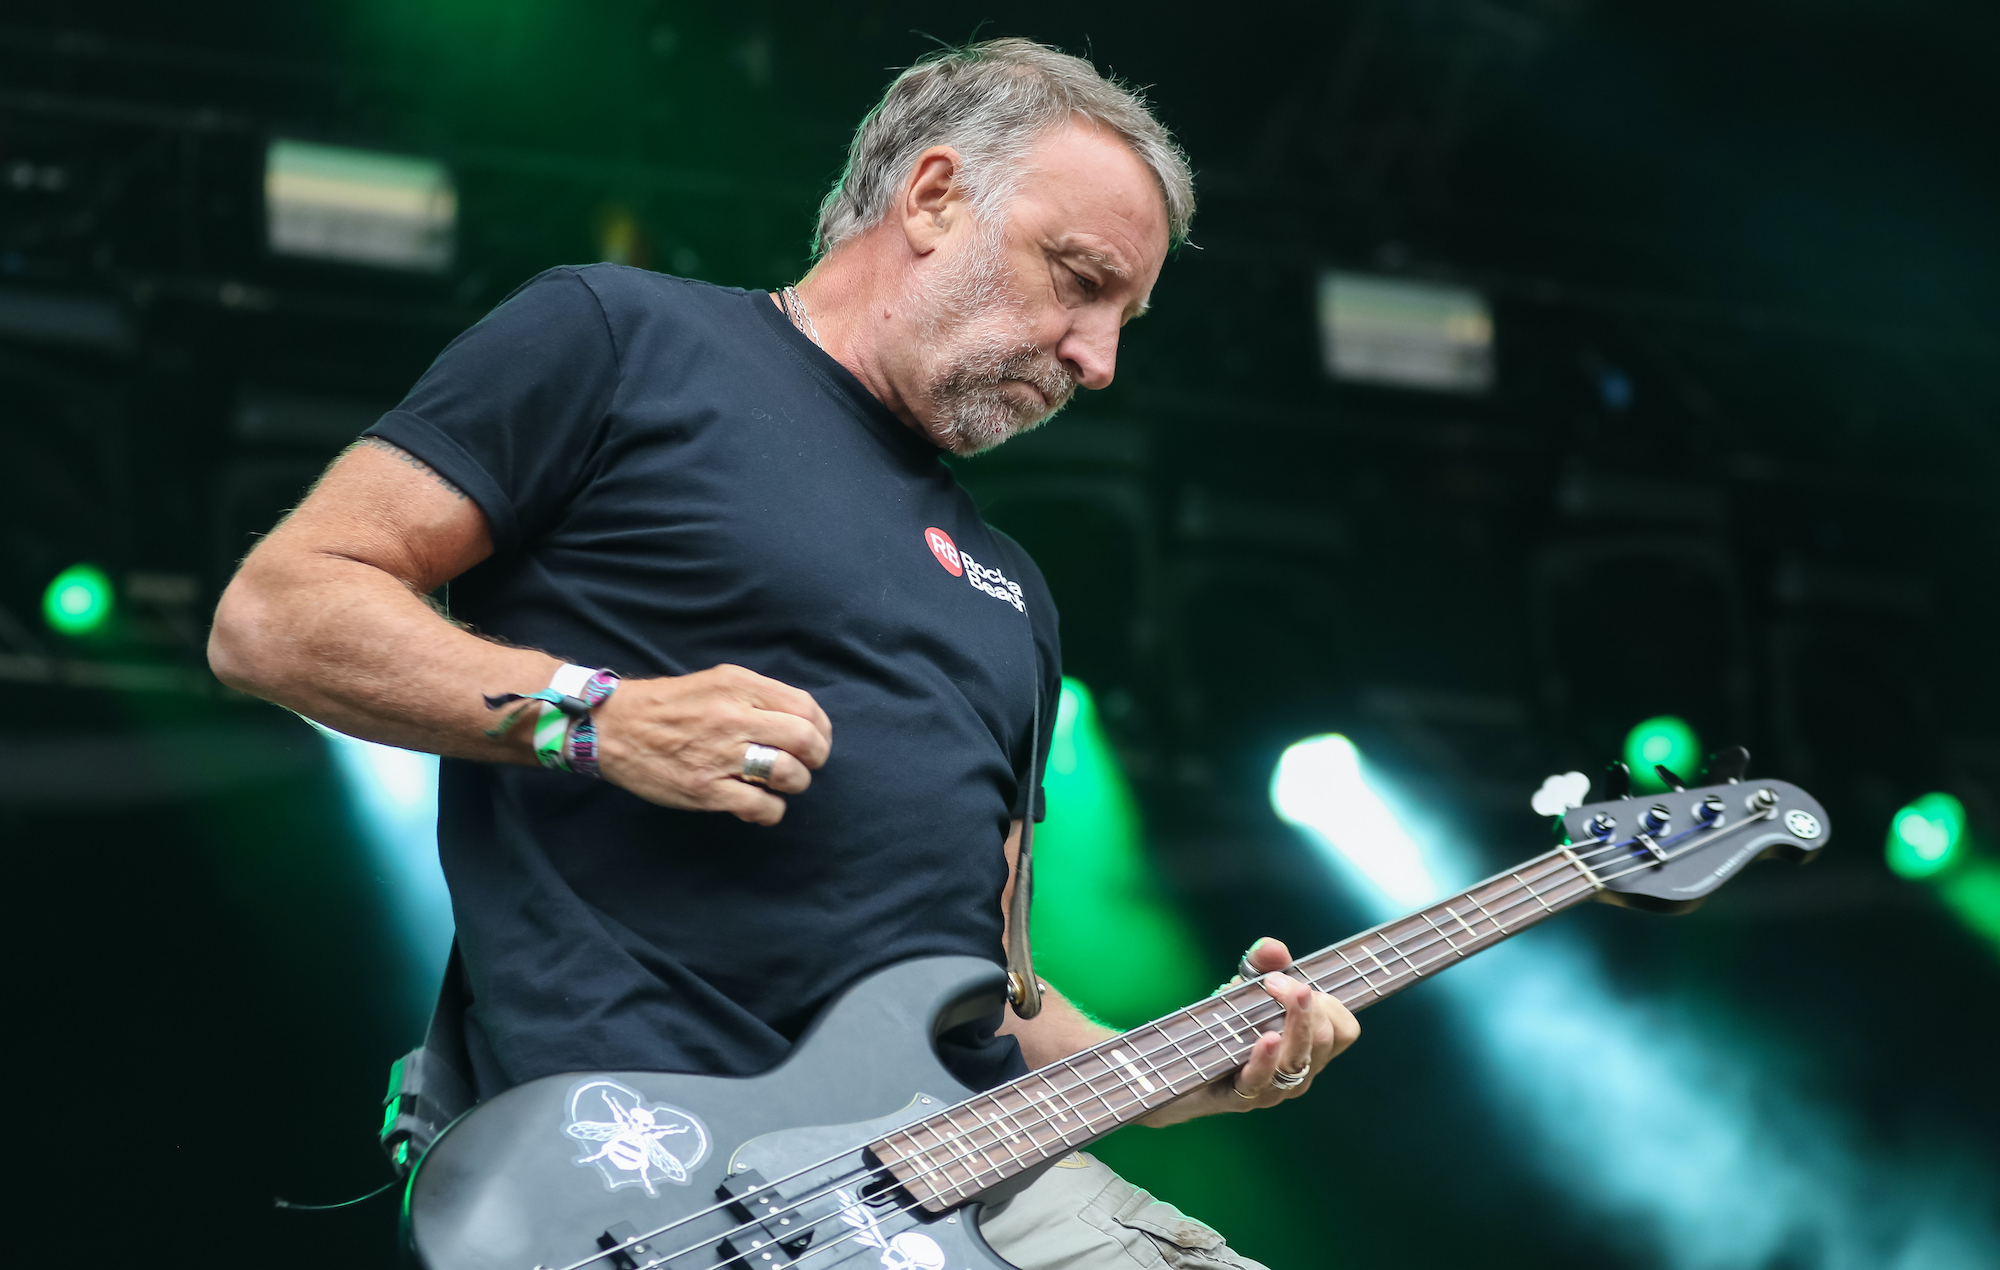 Peter Hook announces Joy Division listening party for 'Closer' 40th anniversary, Shop Ticket Snatchers